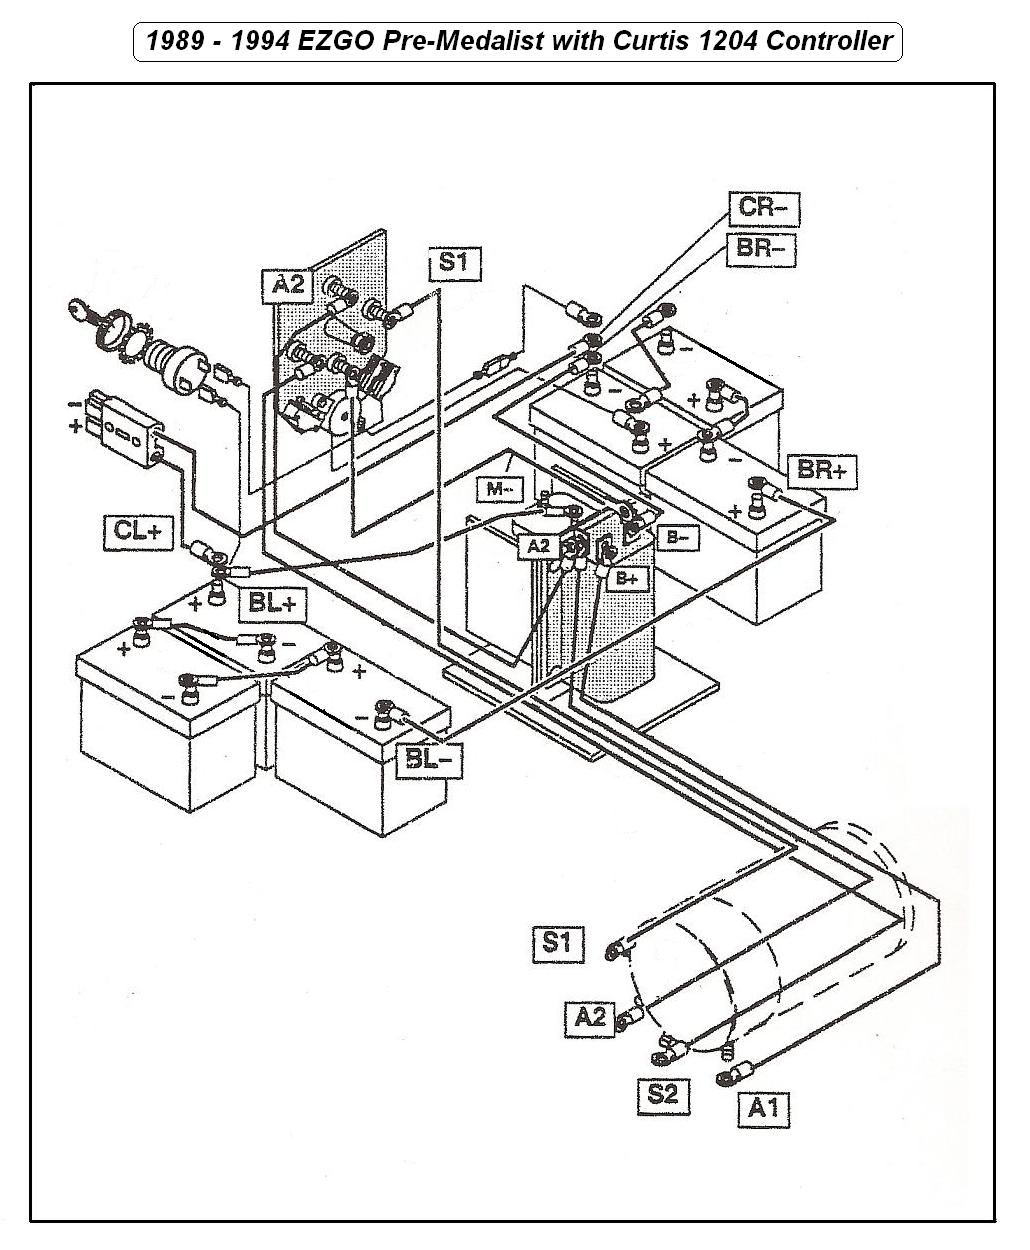 95 ezgo wiring diagram 95 free wiring diagrams wiring diagram